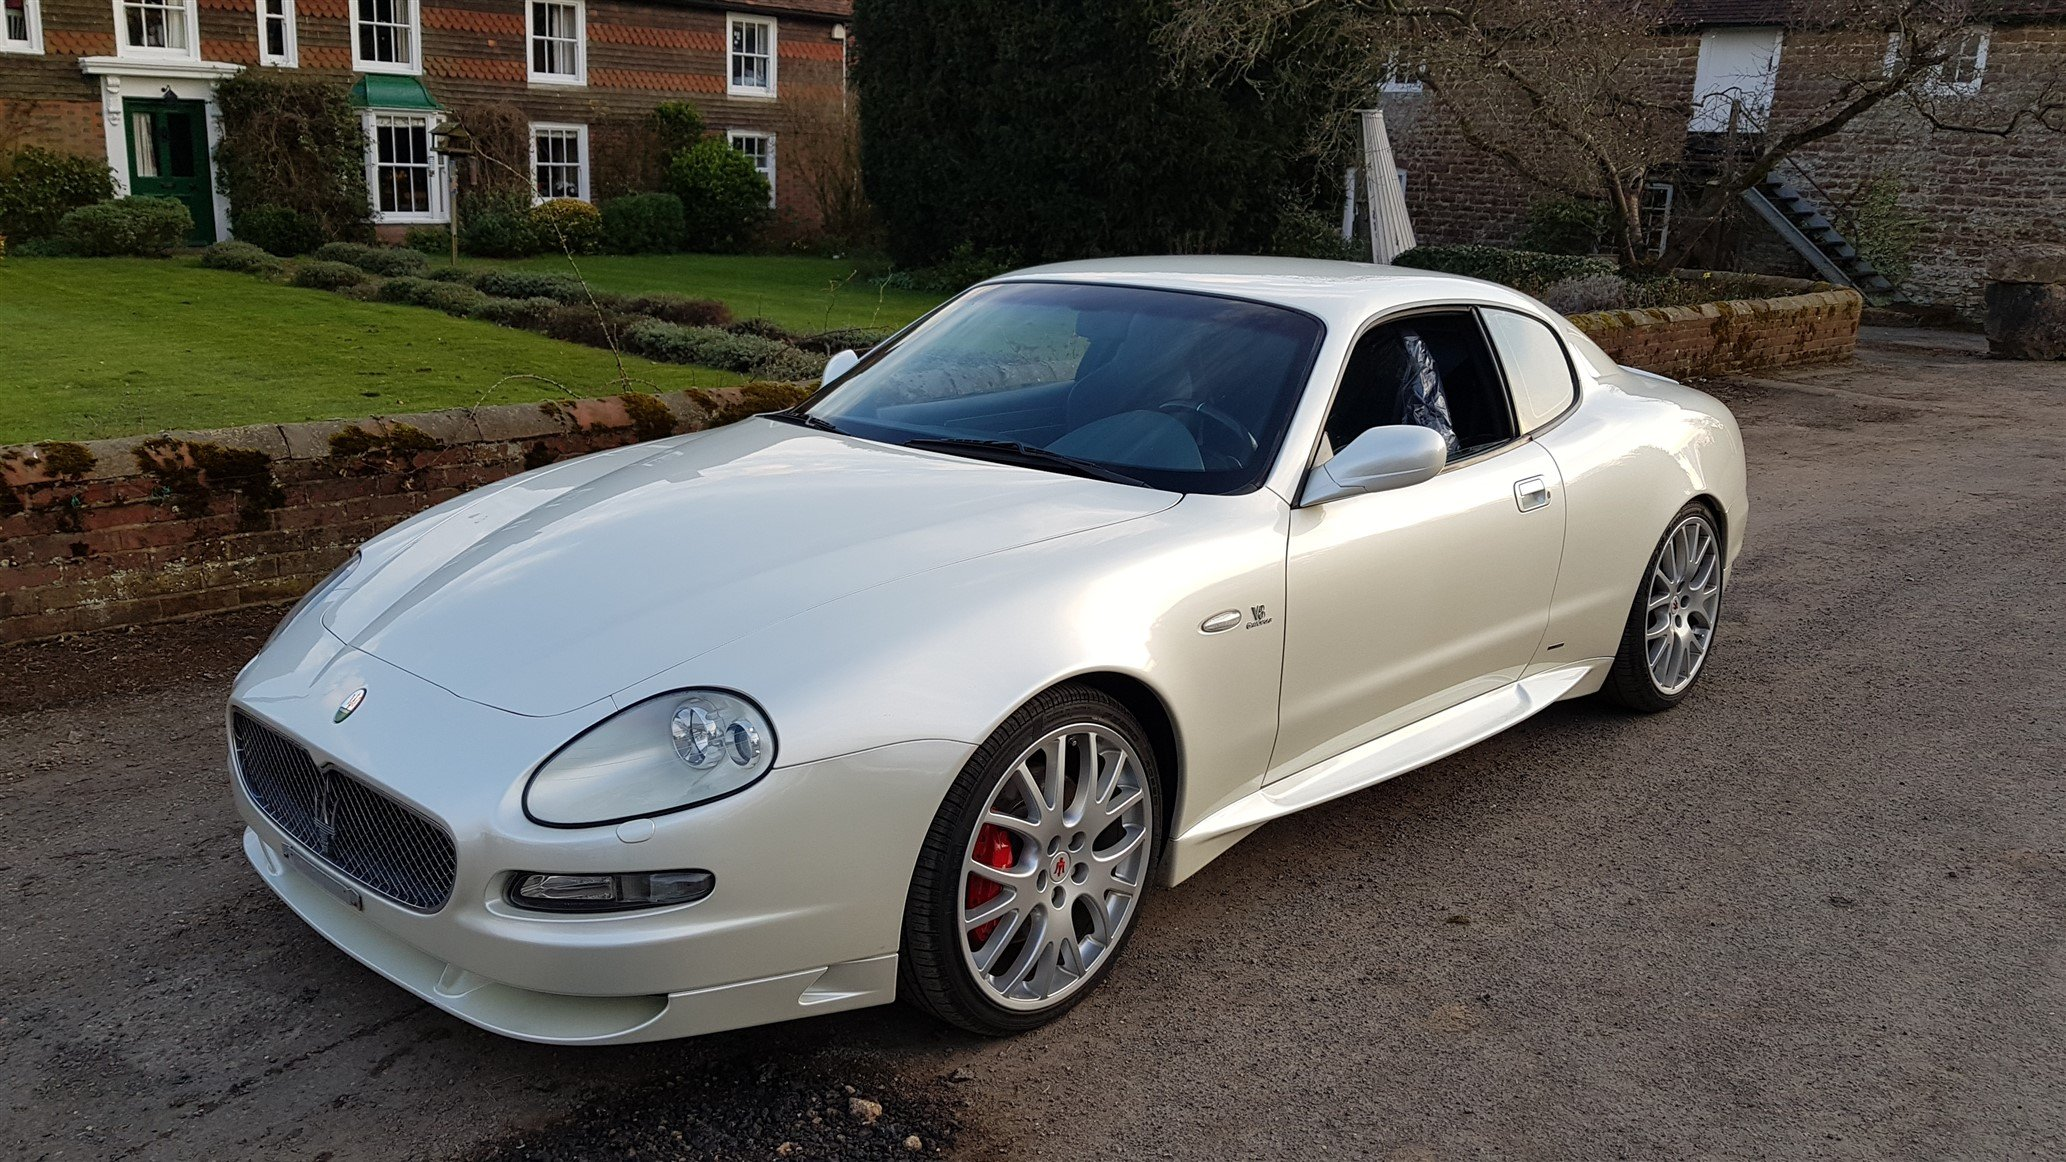 2005 Maserati Gransport LHD For Sale (picture 2 of 4)